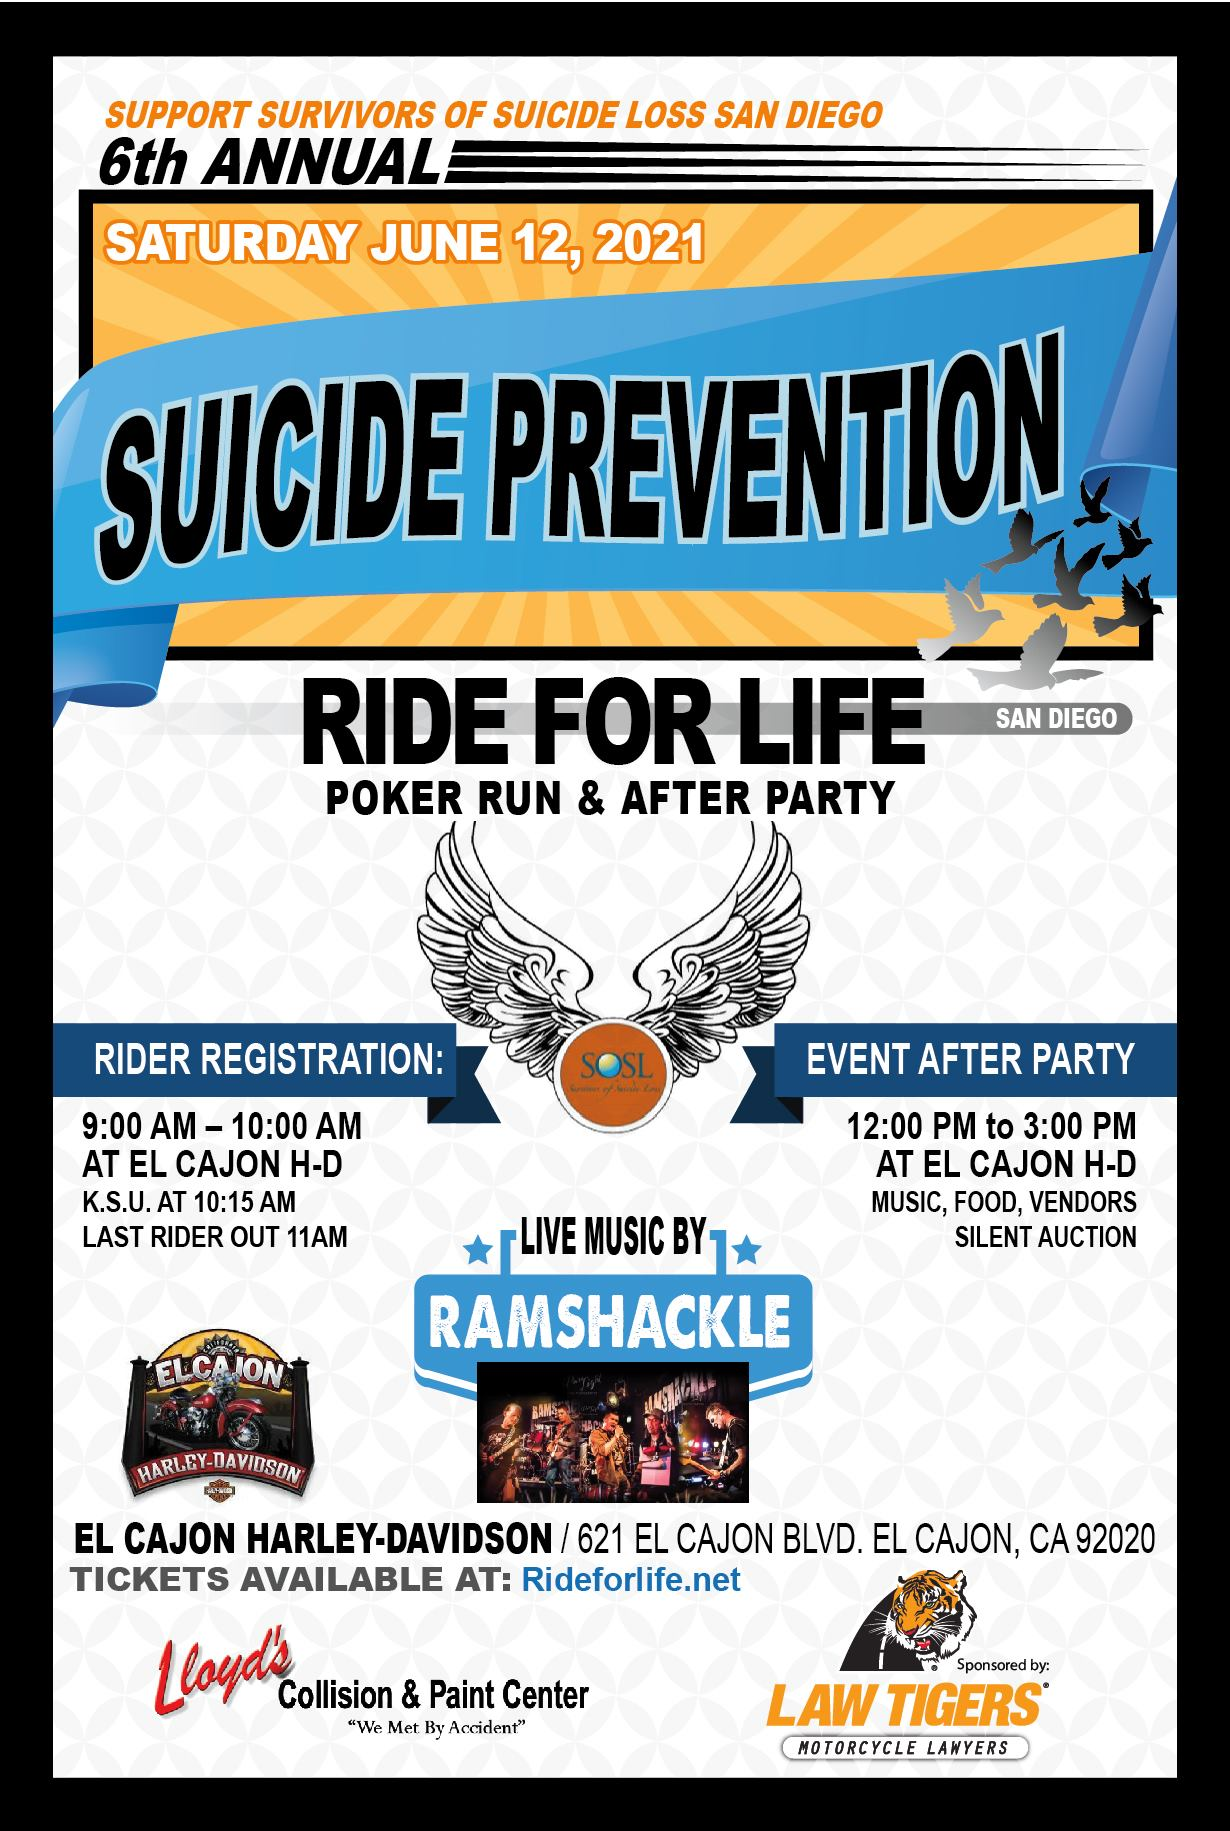 6th Annual Suicide Prevention Ride For Life